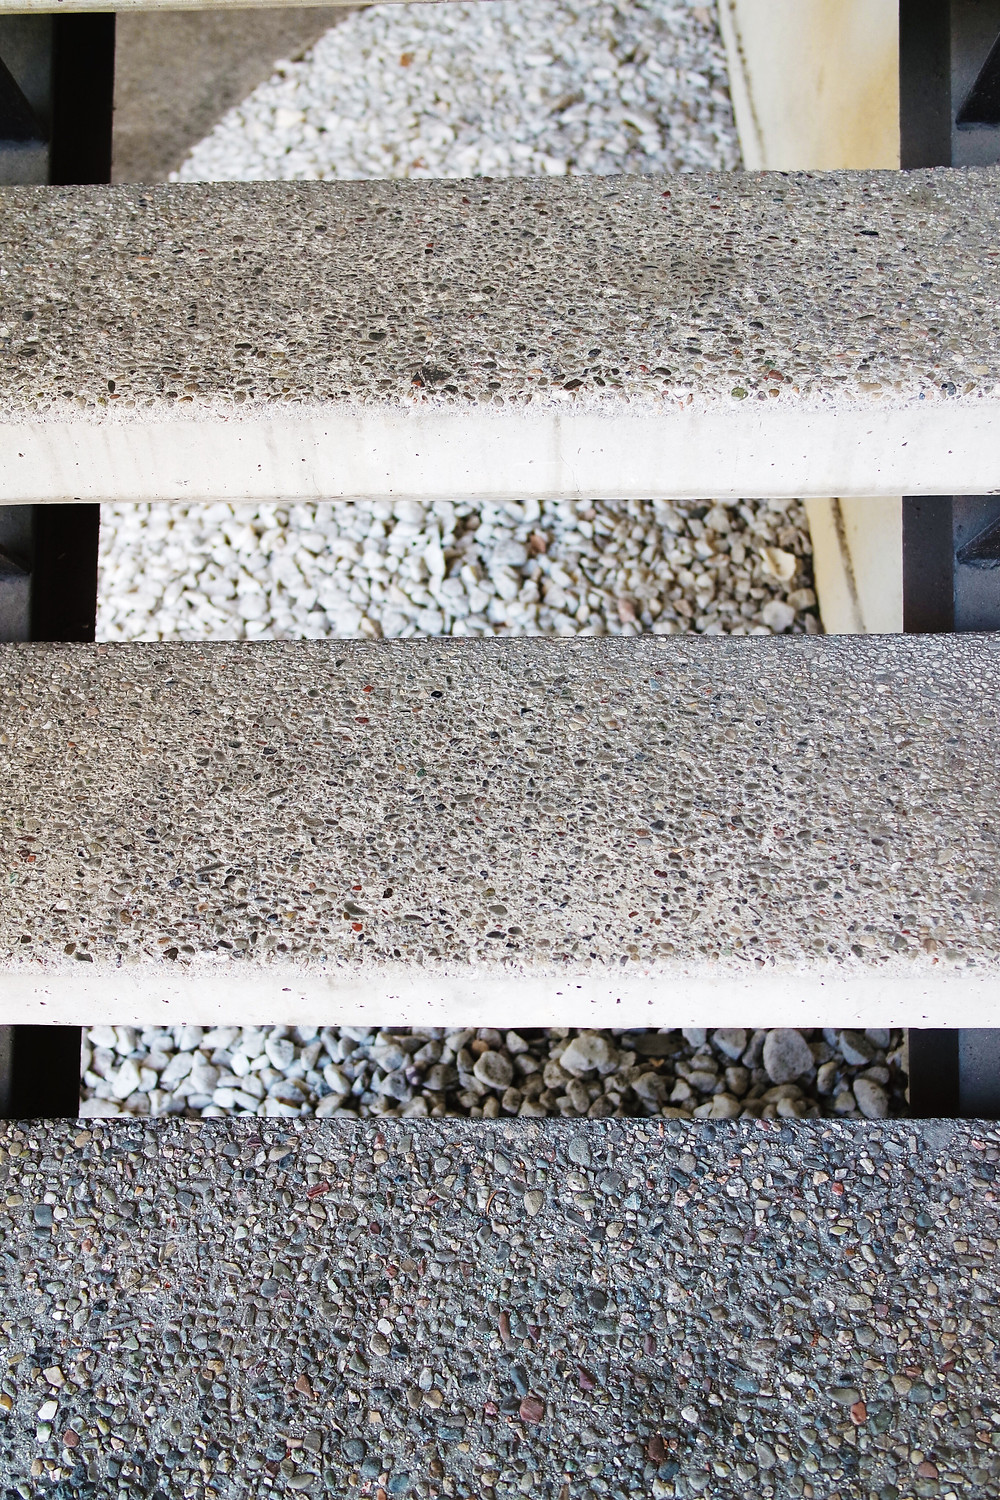 Three treads of a stone staircase, with open space in between each tread.